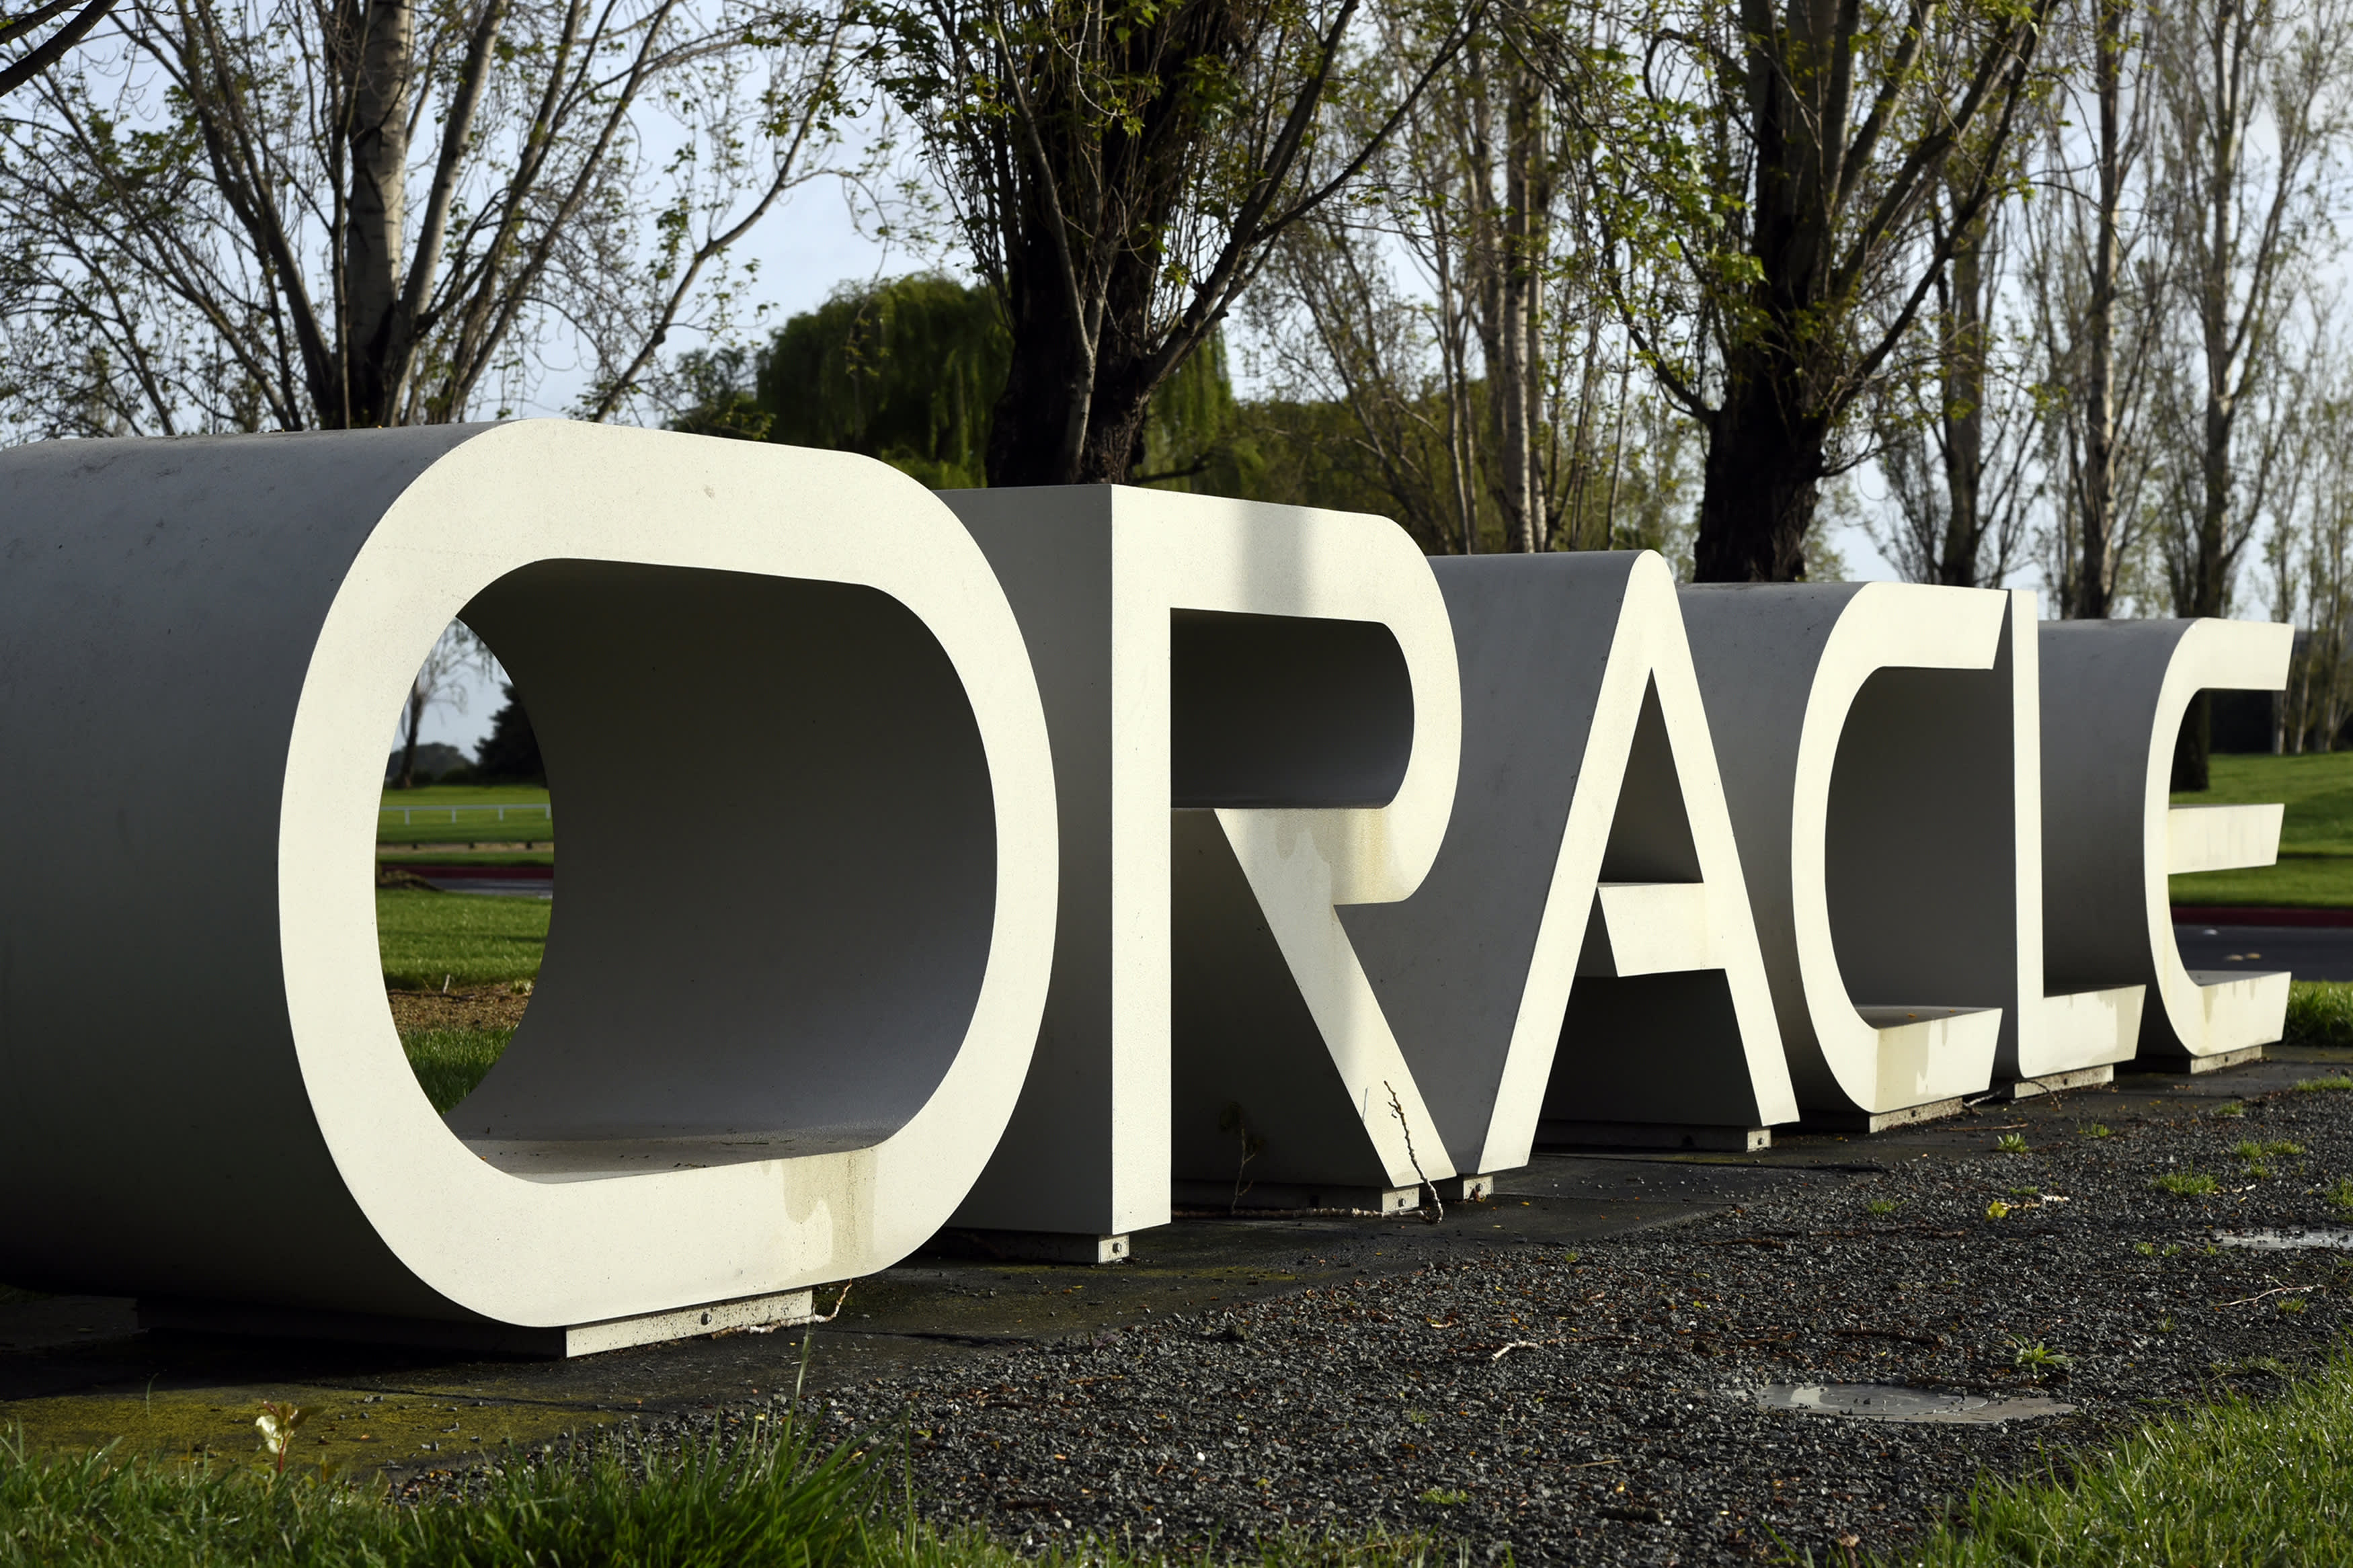 Oracle to hire 2,000 workers to expand cloud business to more countries